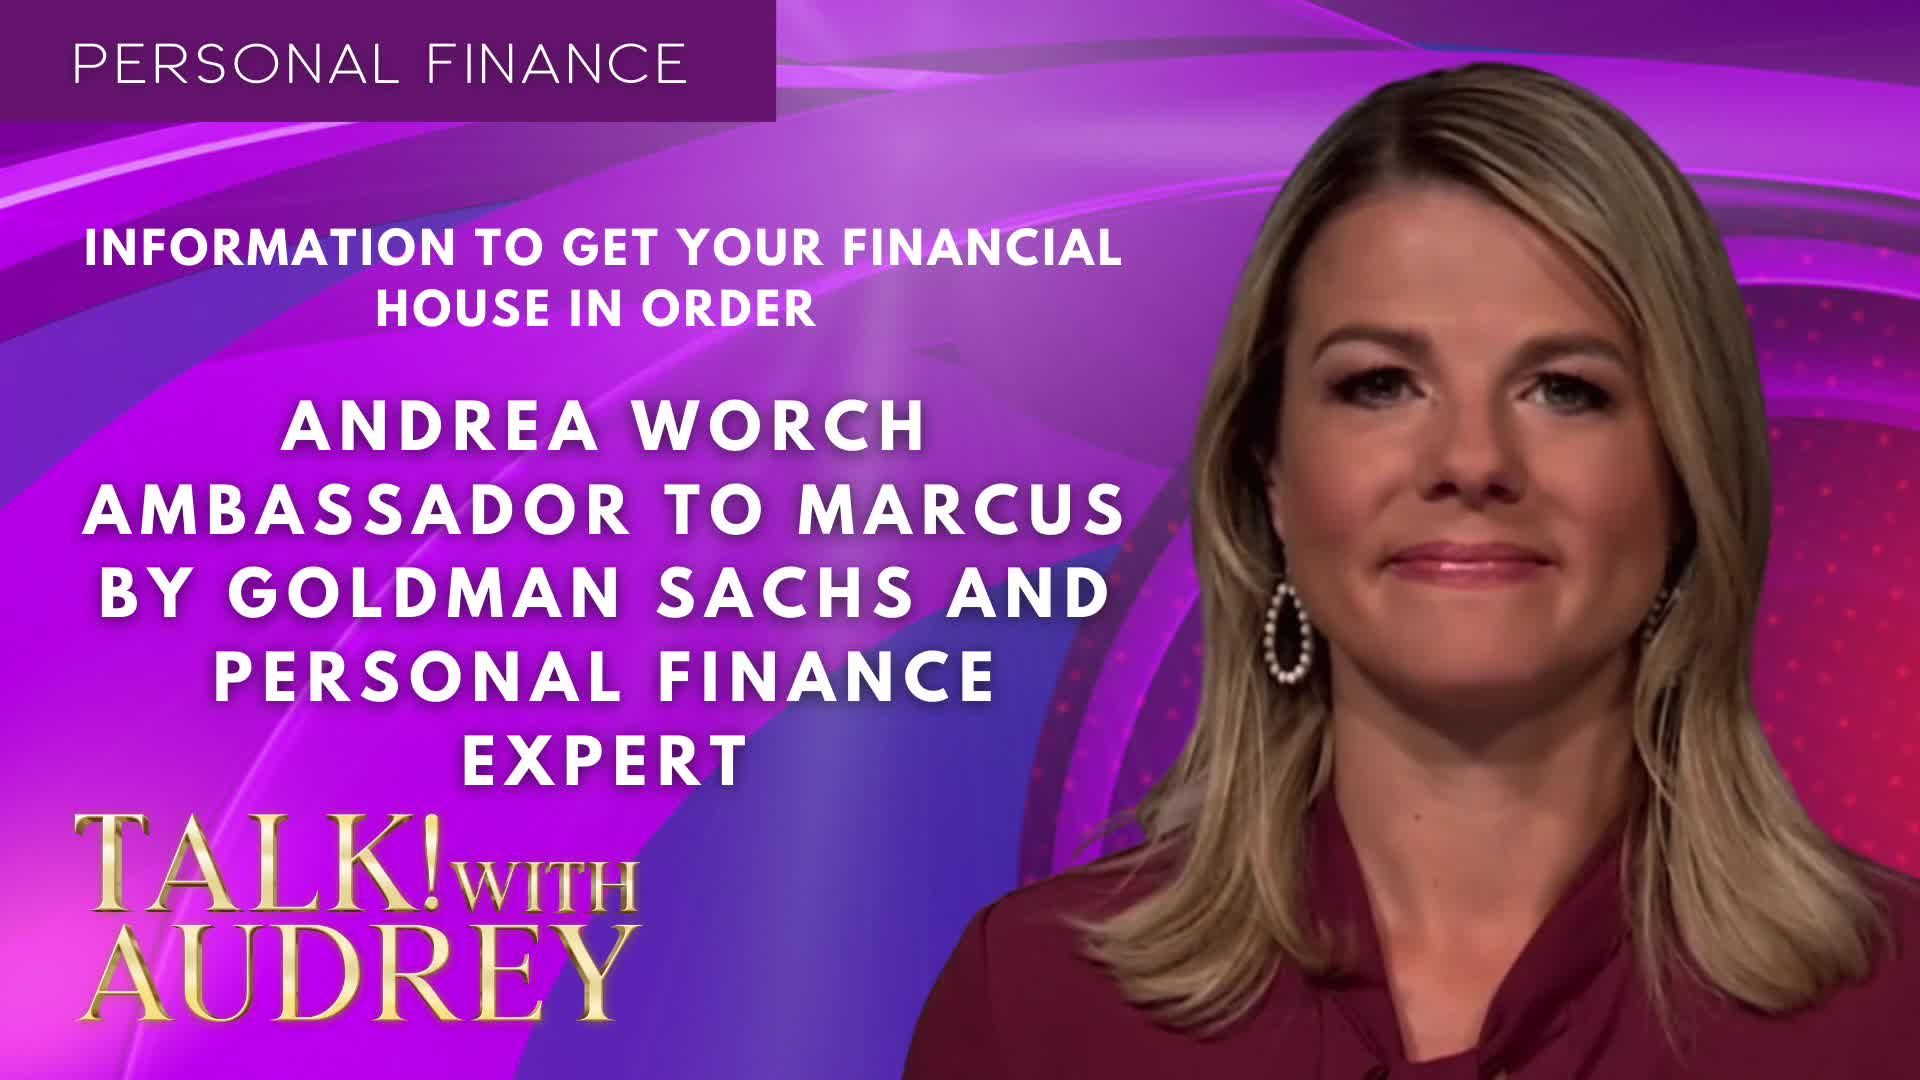 TALK! with AUDREY - Information To Get Your Financial House in Order with Andrea Worch